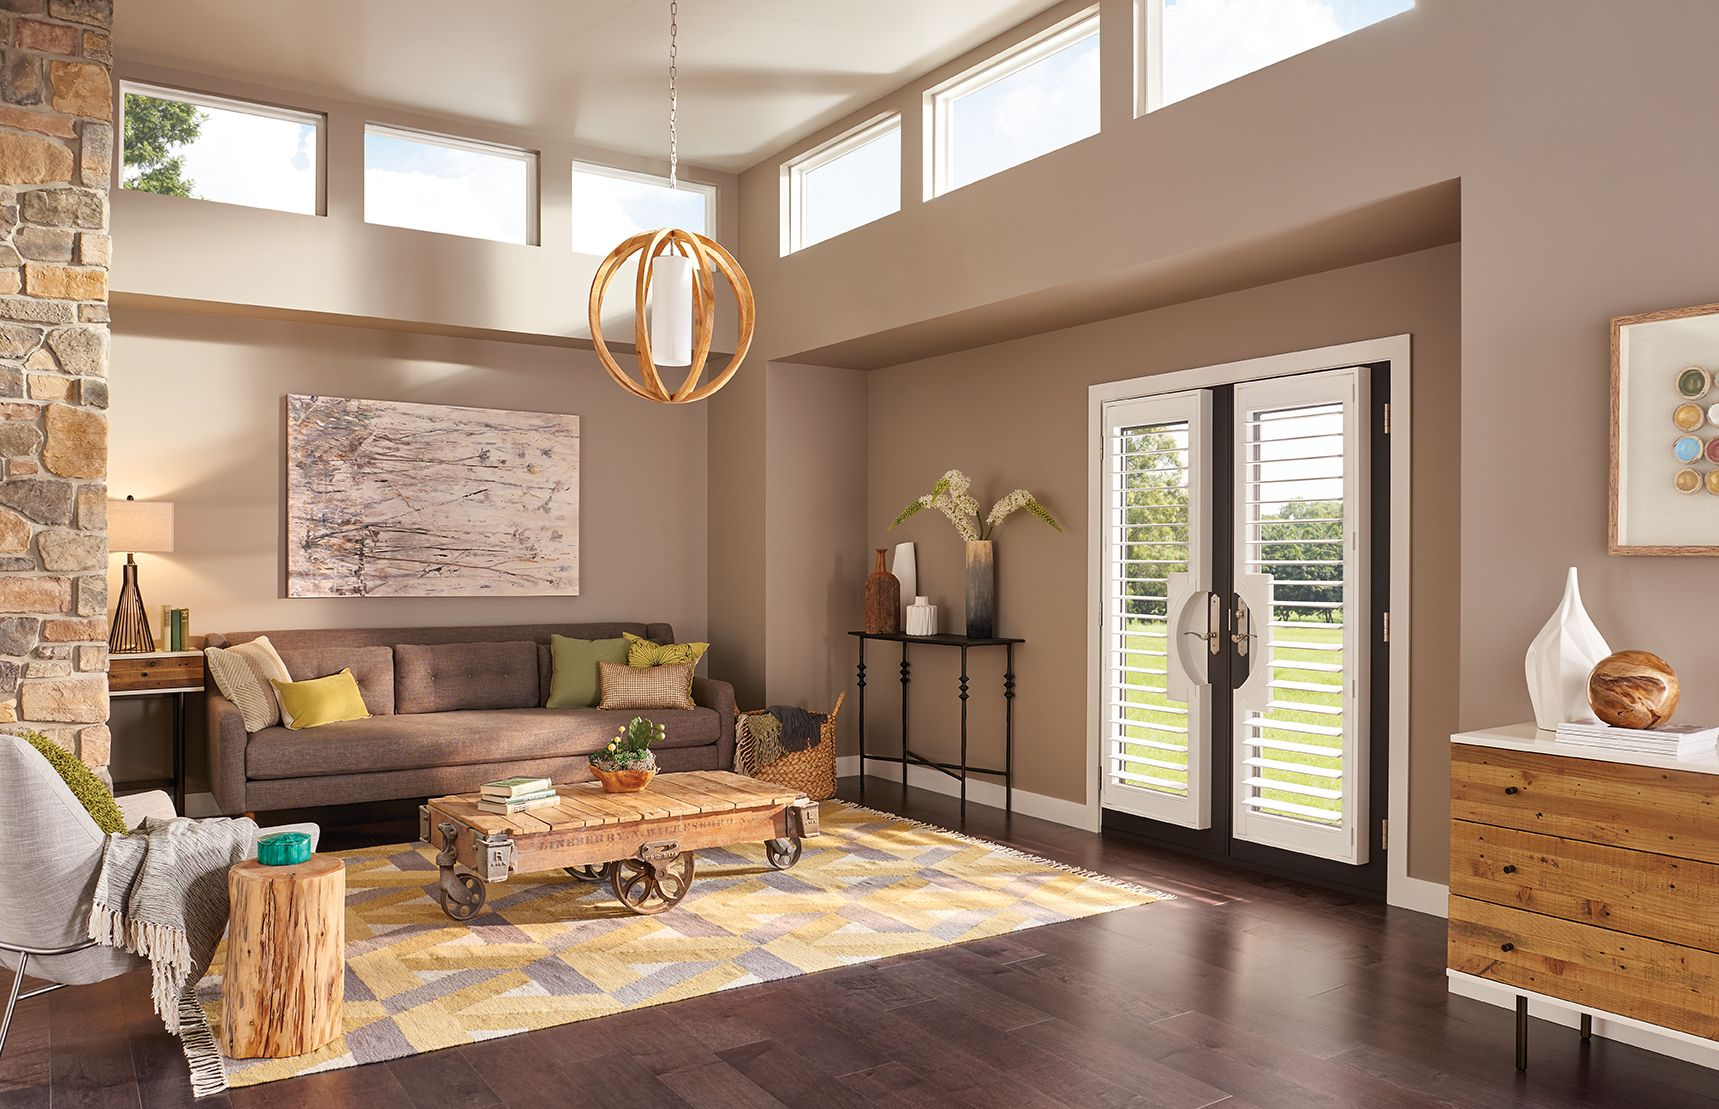 French Door Cutout in Cotton • 3 1/2 inch Louver • 4-sided L Frame • UltraClearview® hidden rear tilt